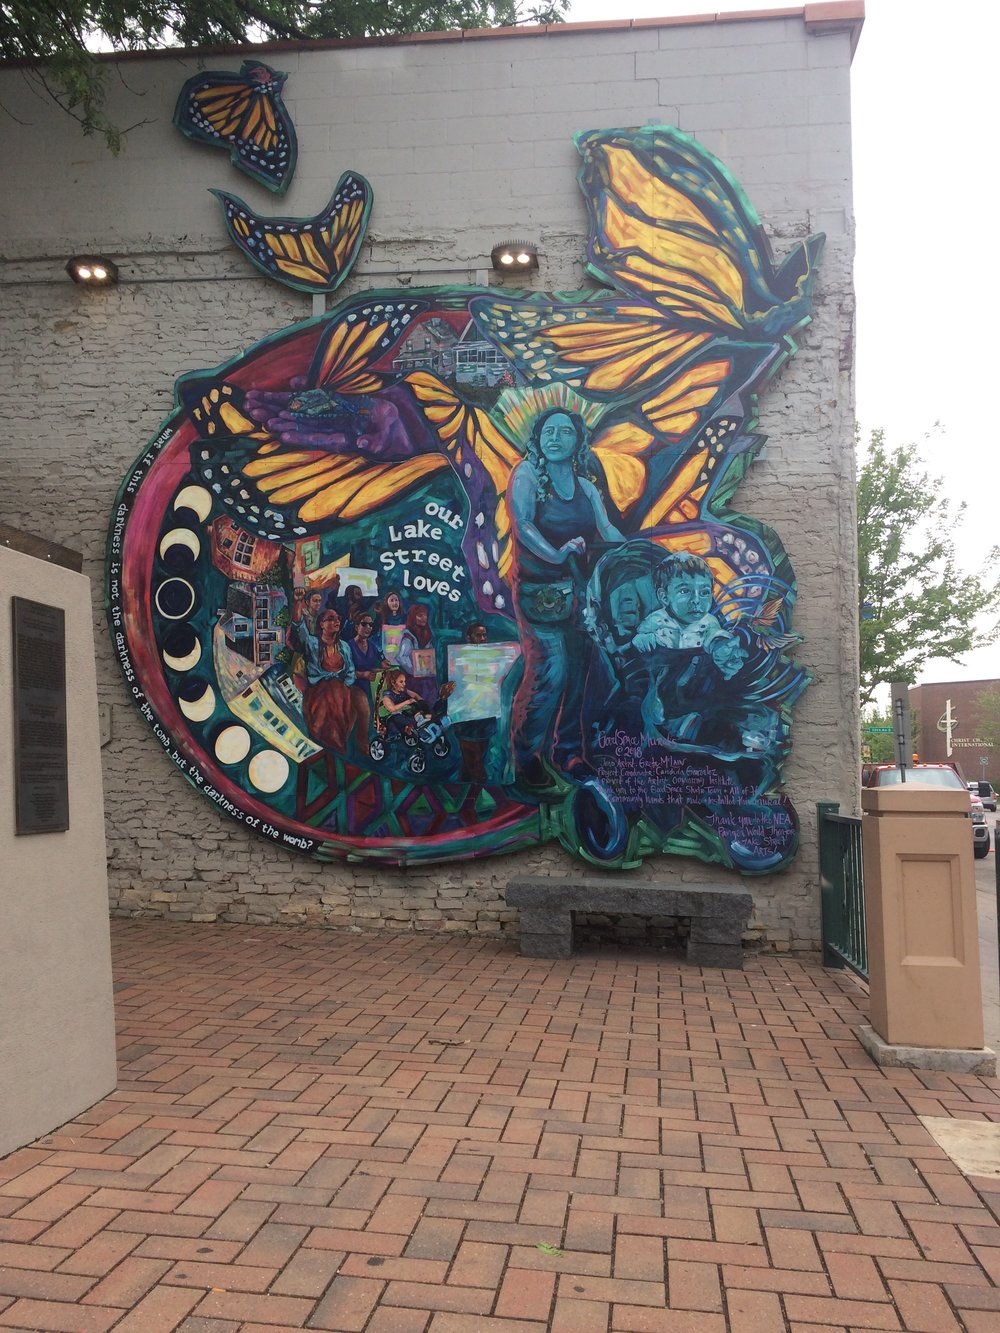 a mural in the South Minneapolis neighborhood that has the much loved monarch butterfly, a symbol of immigration as it annually travels from Canada down to Mexico.